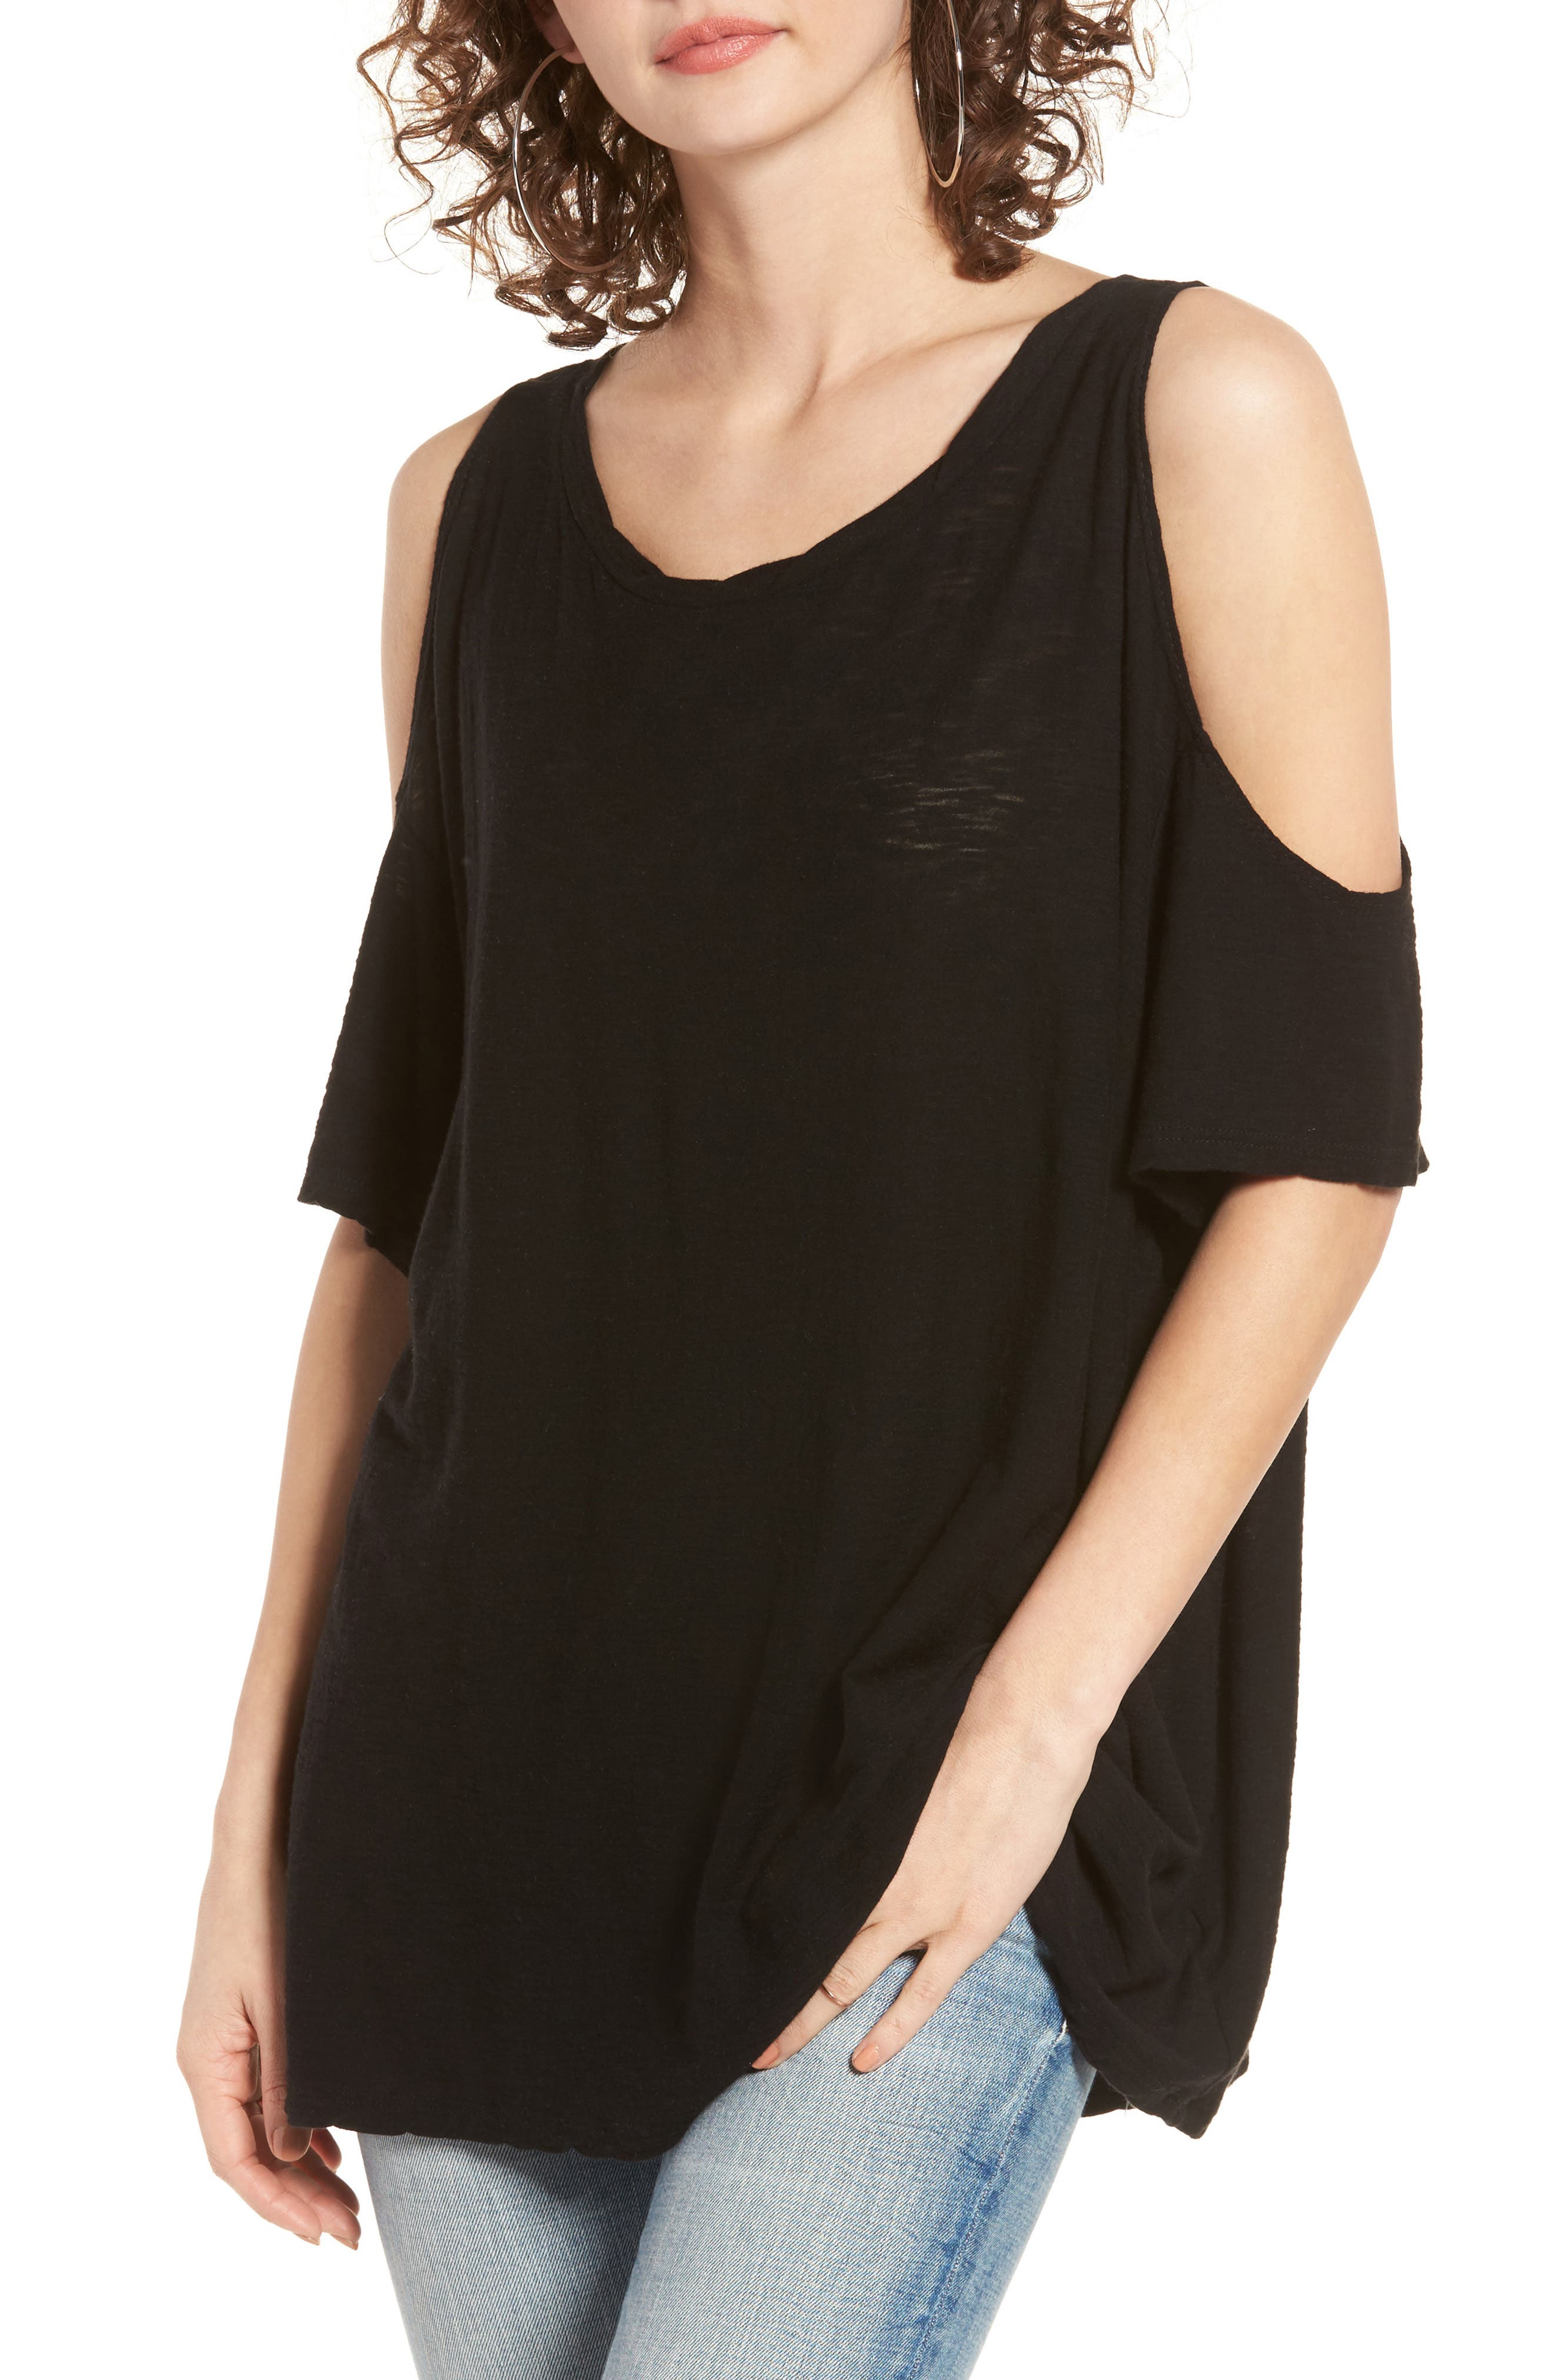 Alternate Image 1 Selected - Michelle by Comune Frisco Cold Shoulder Tee